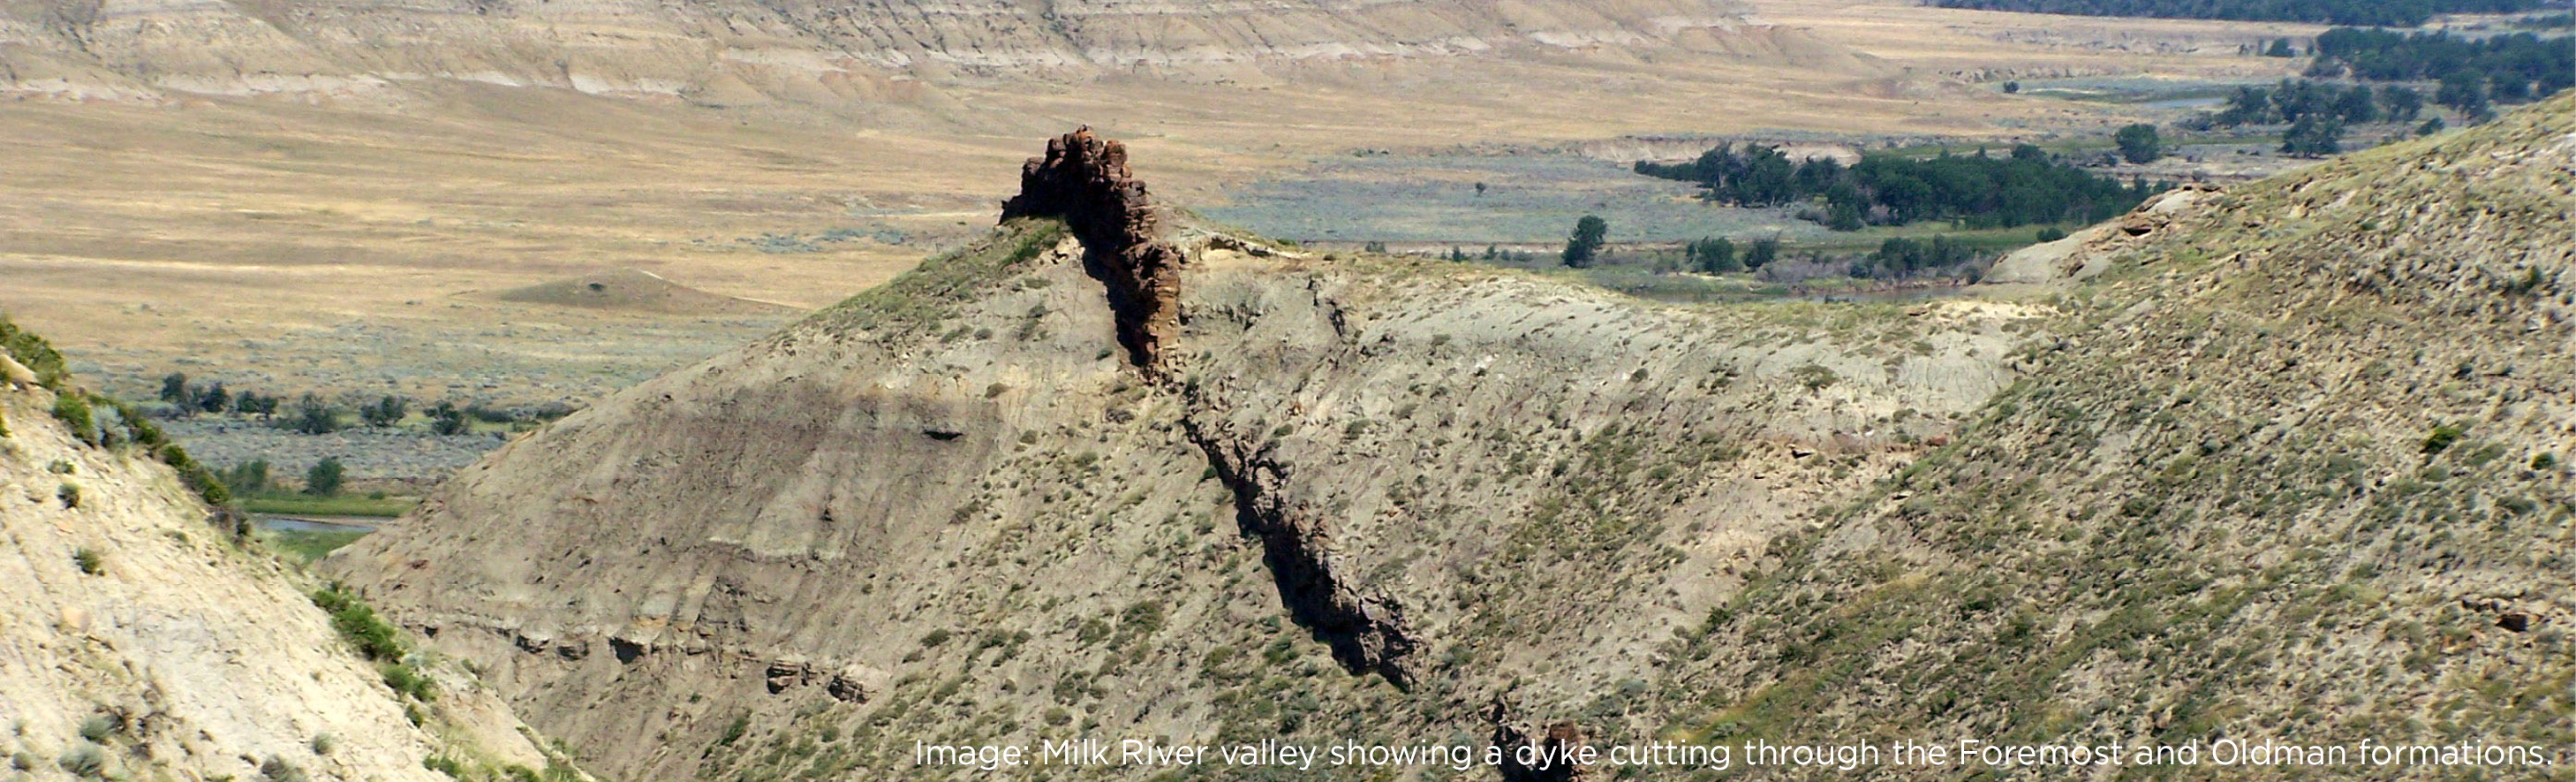 Milk River valley showing a dike cutting through the Oldman and Foremost formations.